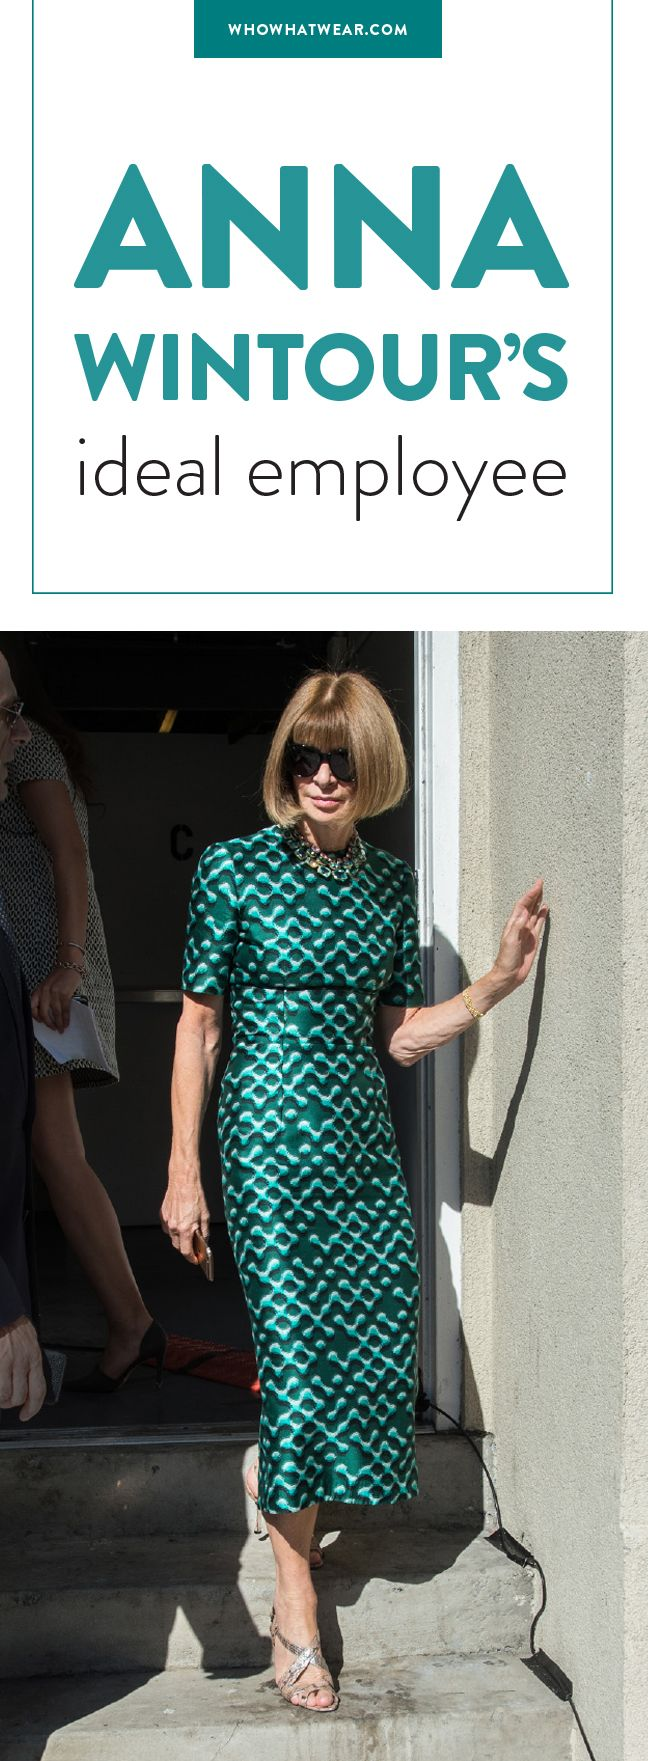 best images about anna wintour editor bill anna wintour s ideal employee has these qualities